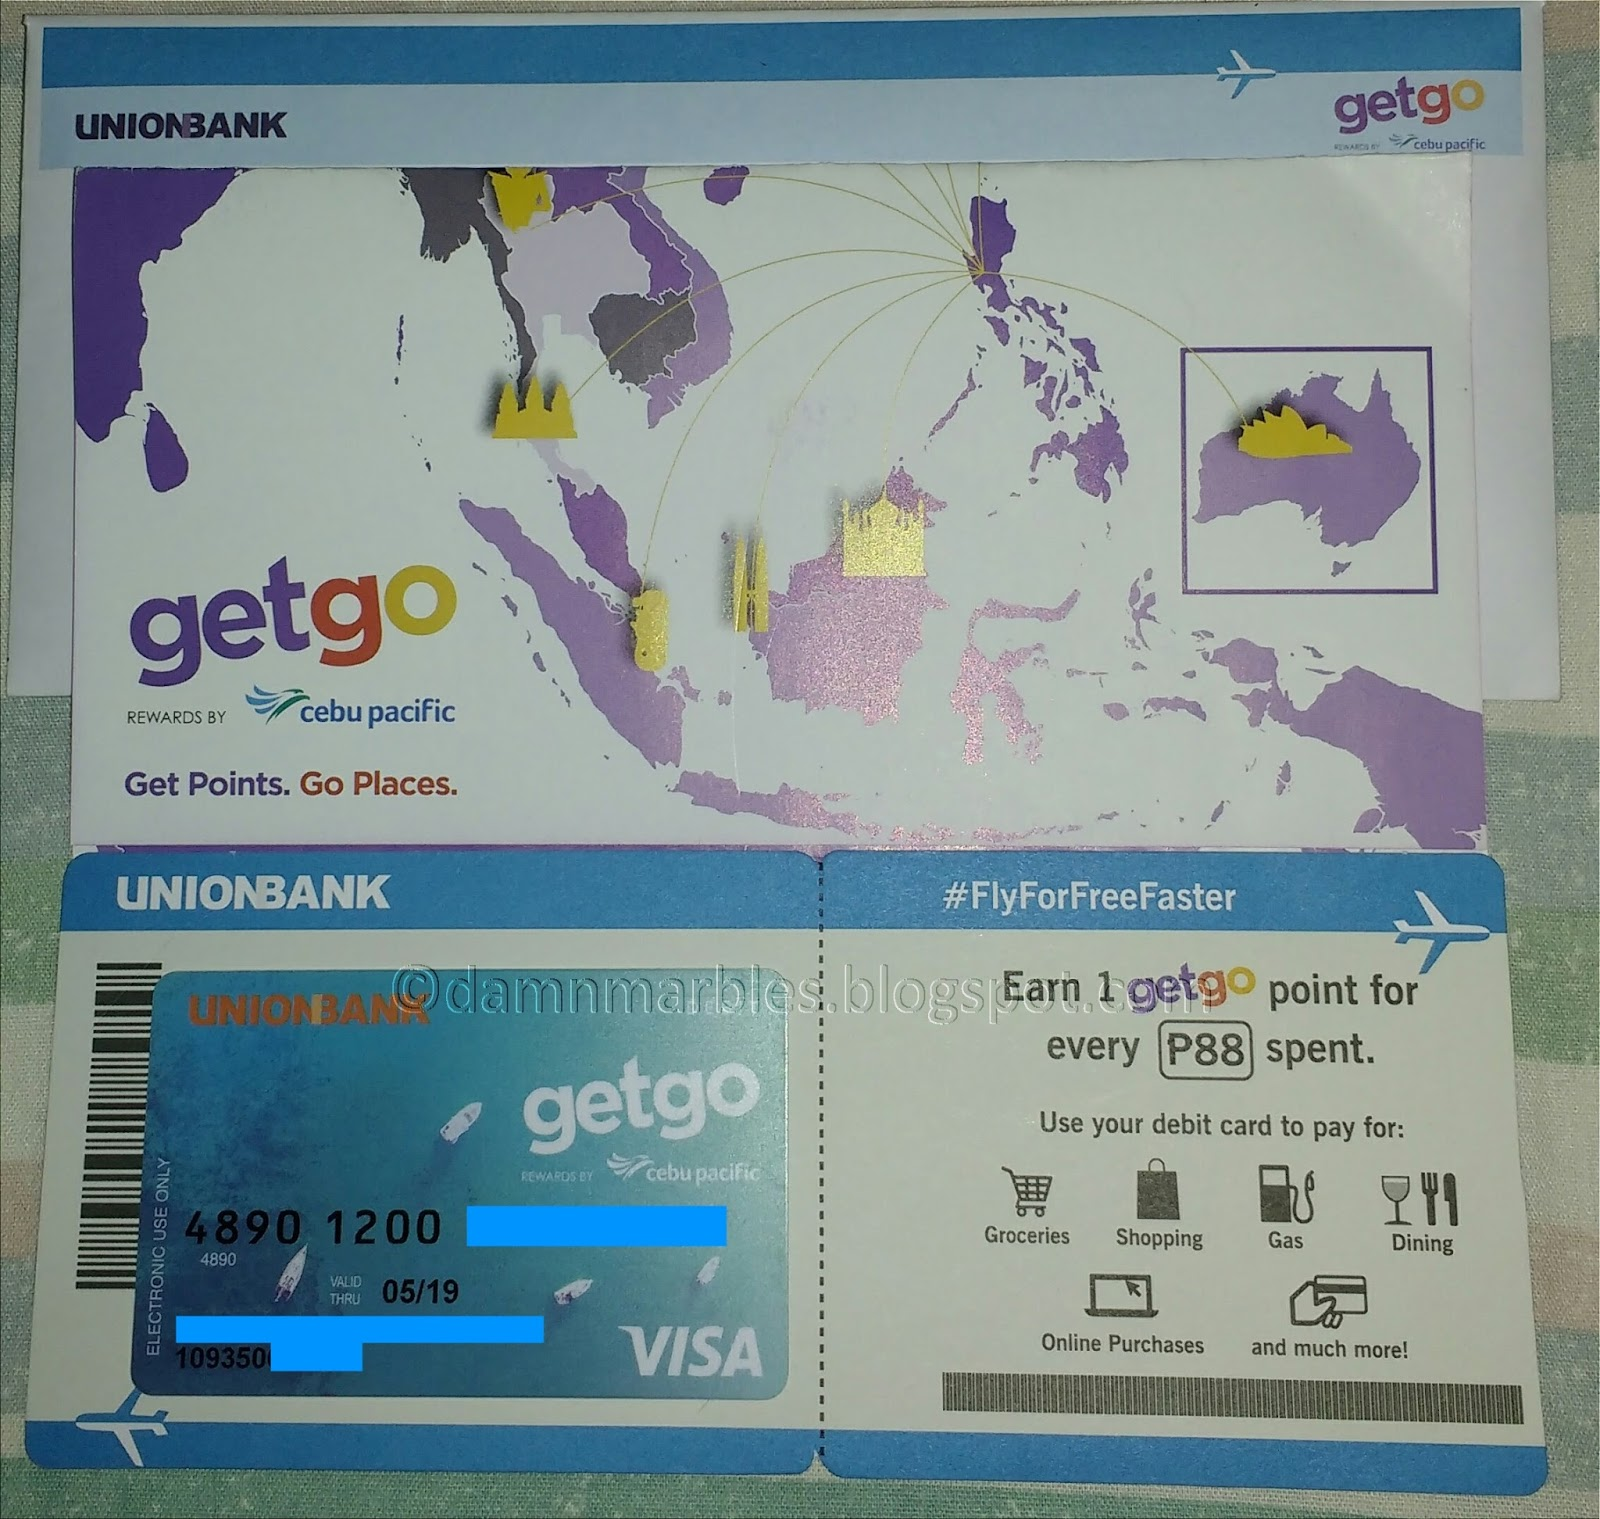 how to apply for the cebu pacific getgo debit card from unionbank flyforfree - Get A Prepaid Card